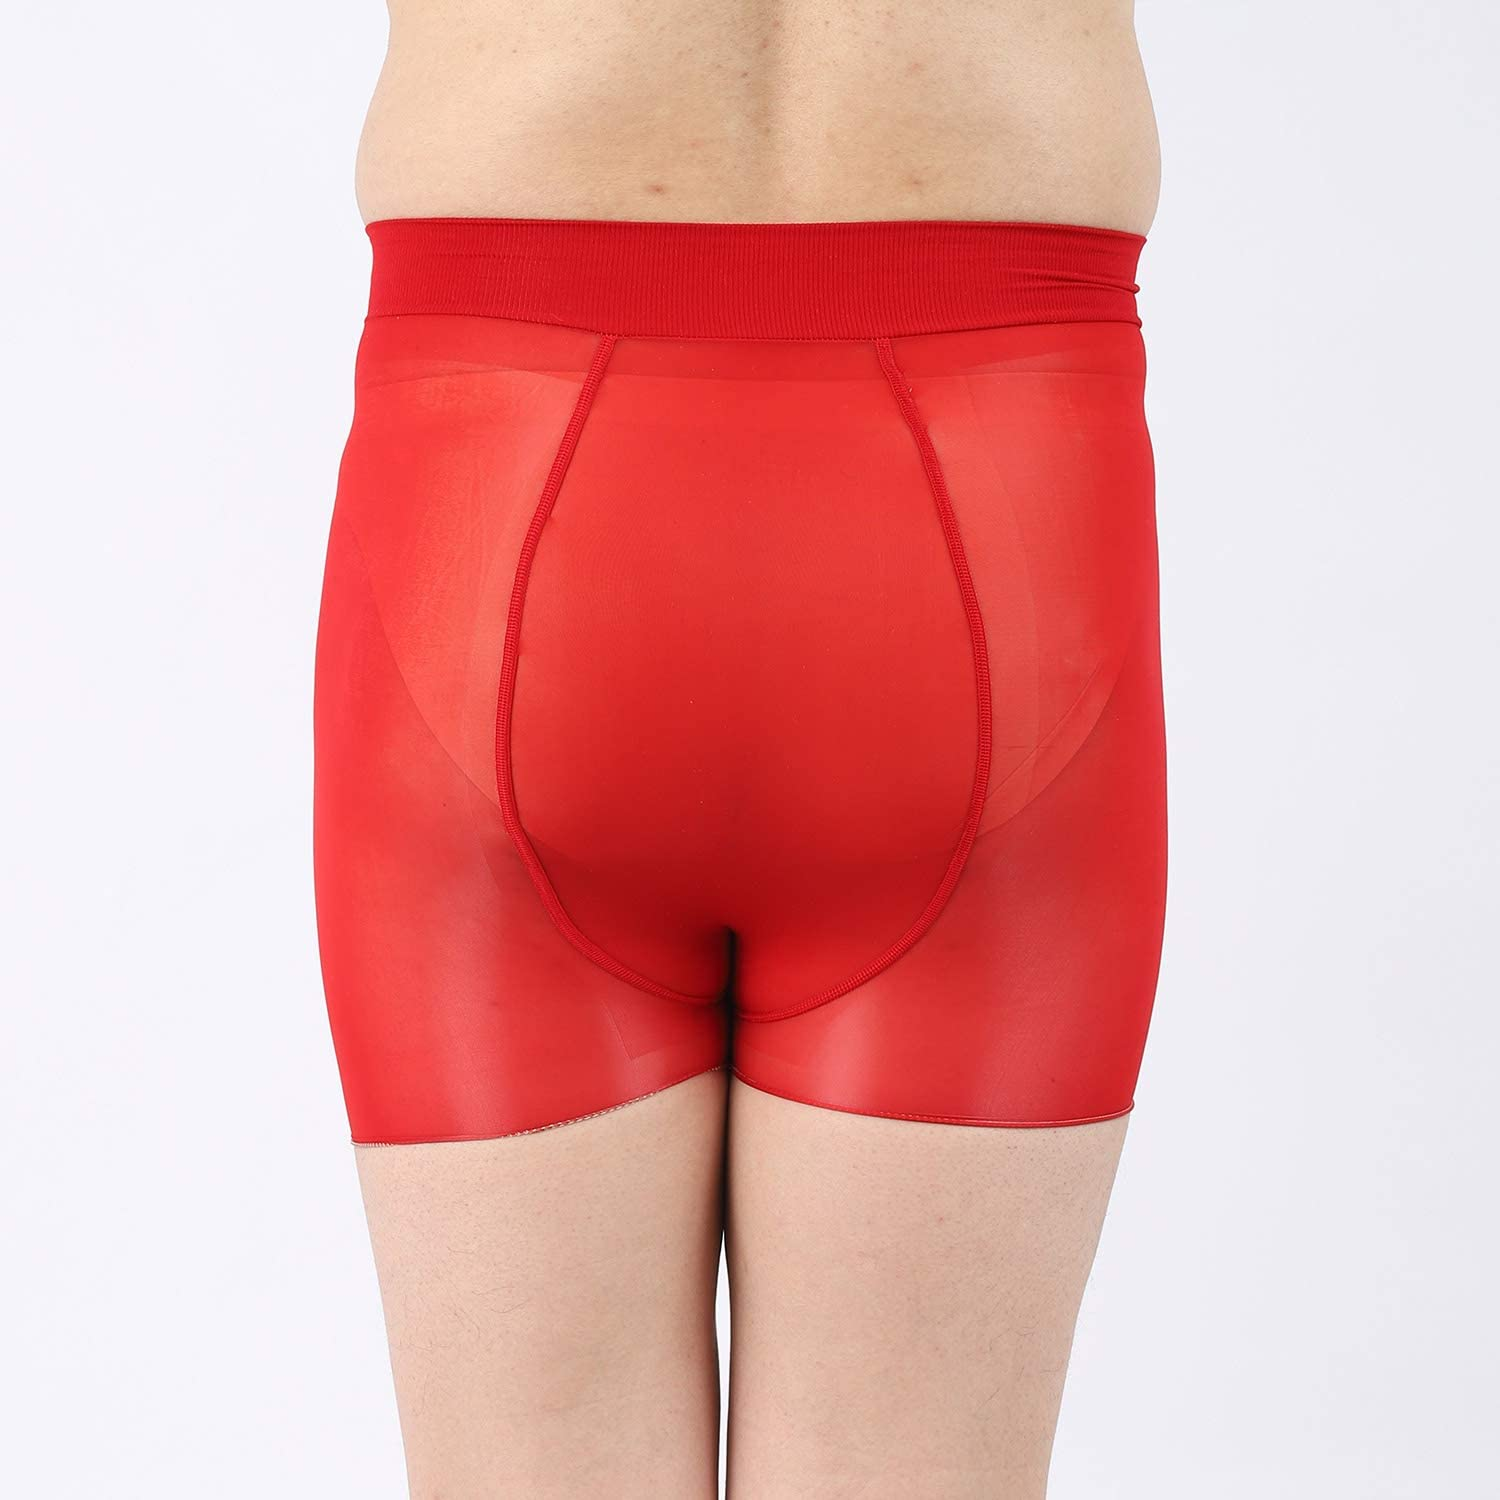 ElsaYX Men's Shiny Glossy Pantyhose Boxer Trunks Underwear with Pouch